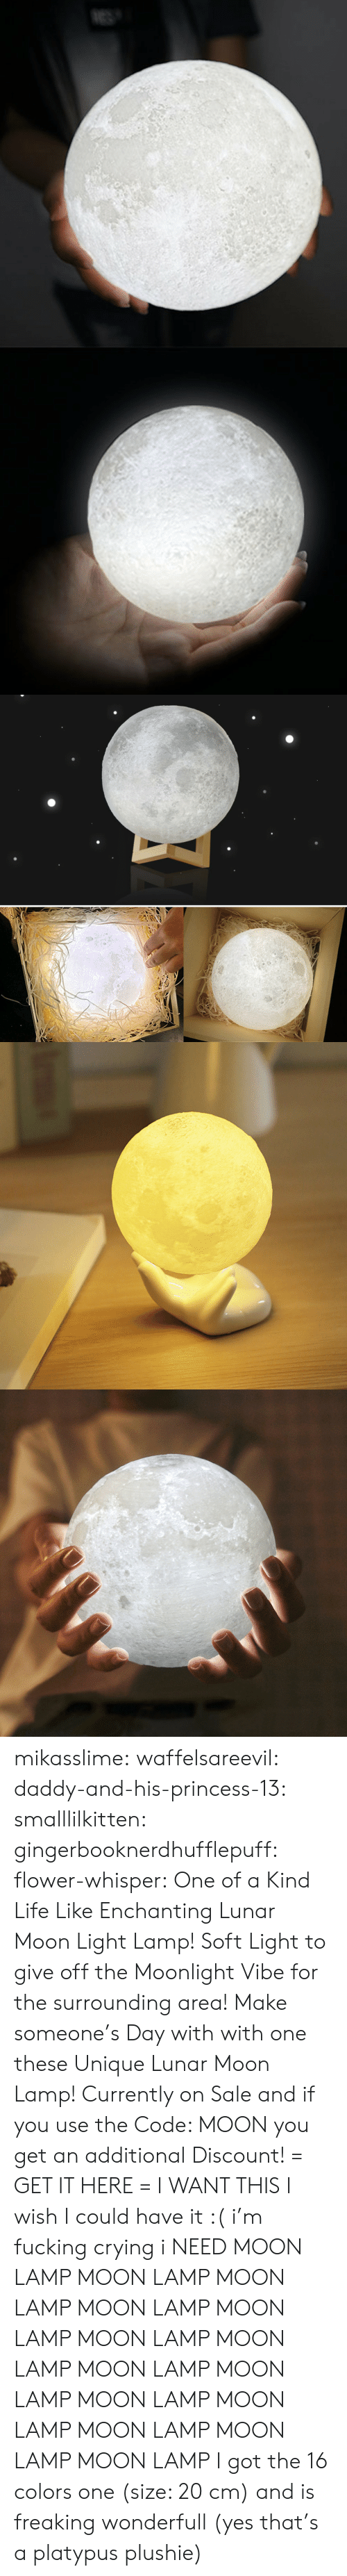 lunar: mikasslime: waffelsareevil:   daddy-and-his-princess-13:  smalllilkitten:   gingerbooknerdhufflepuff:   flower-whisper:  One of a Kind Life Like Enchanting Lunar Moon Light Lamp! Soft Light to give off the Moonlight Vibe for the surrounding area! Make someone's Day with with one these Unique Lunar Moon Lamp! Currently on Sale and if you use the Code: MOON you get an additional Discount! = GET IT HERE =   I WANT THIS   I wish I could have it :(   i'm fucking crying i NEED   MOON LAMP MOON LAMP MOON LAMP MOON LAMP MOON LAMP MOON LAMP MOON LAMP MOON LAMP MOON LAMP MOON LAMP MOON LAMP MOON LAMP MOON LAMP MOON LAMP     I got the 16 colors one (size: 20 cm) and is freaking wonderfull (yes that's a platypus plushie)